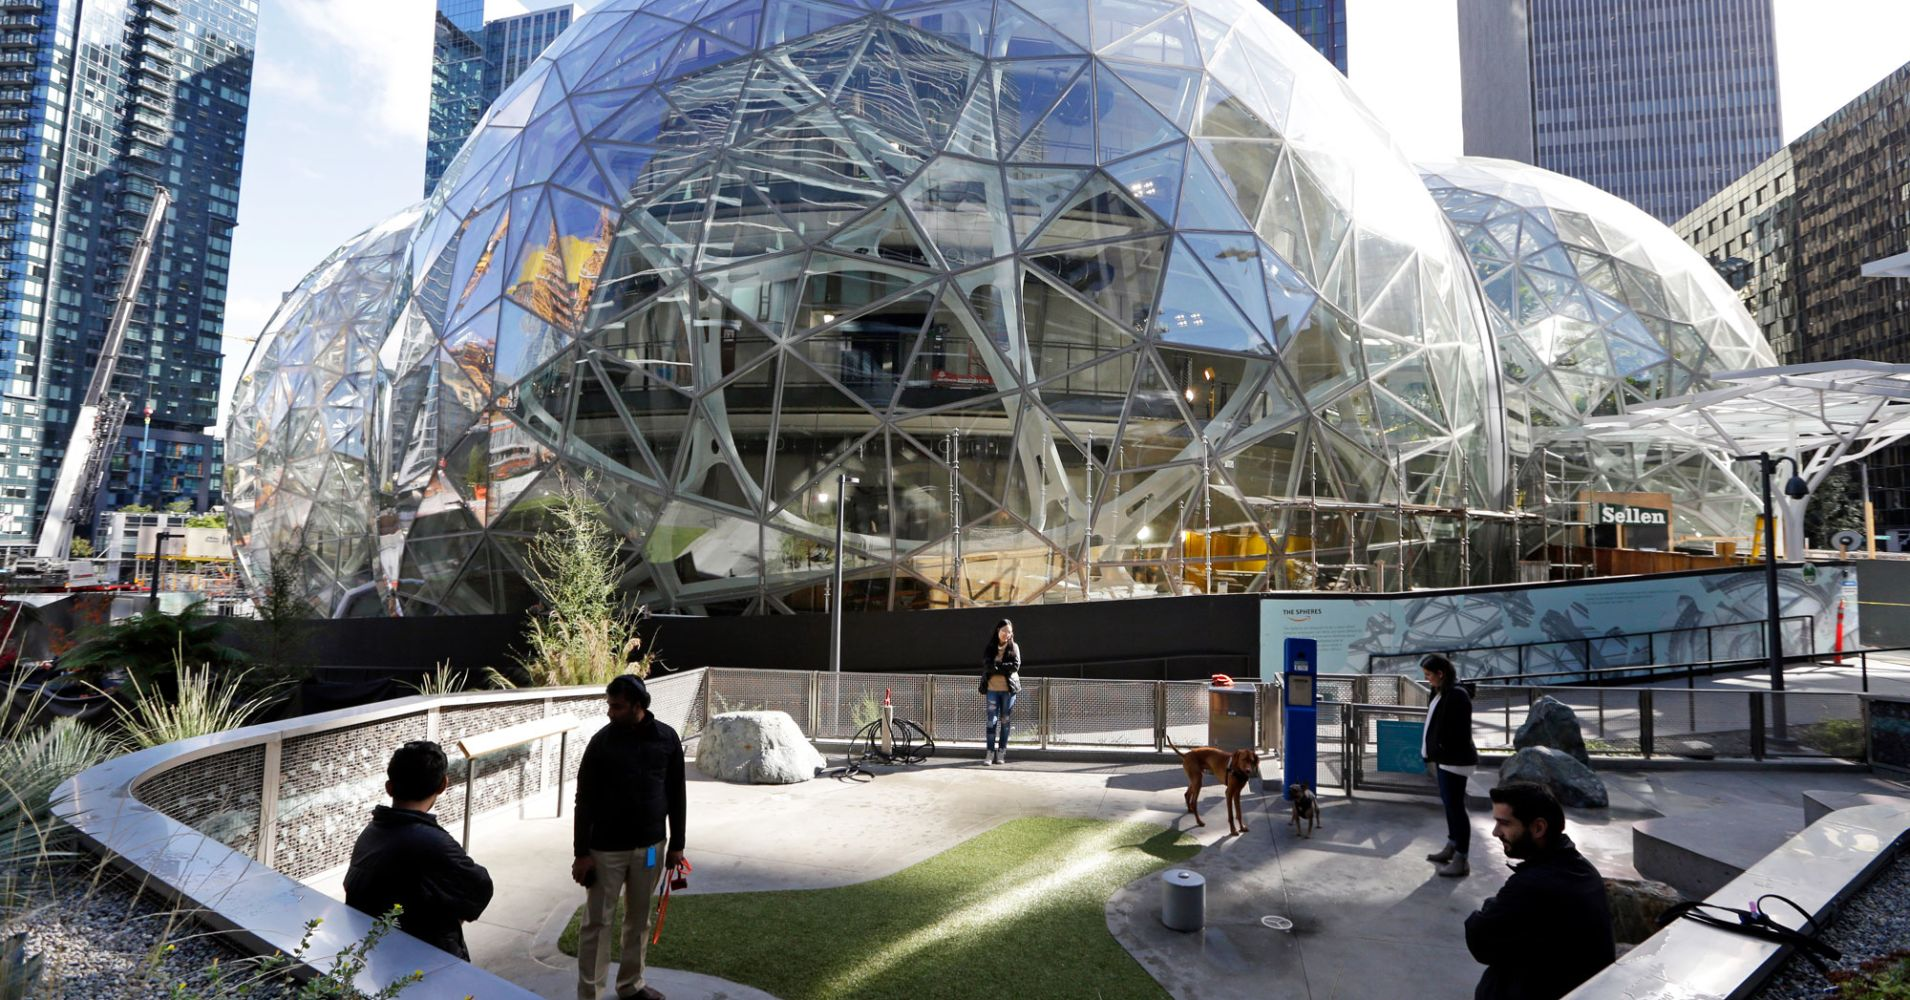 Amazon pulls out of plans to build headquarters in New York City